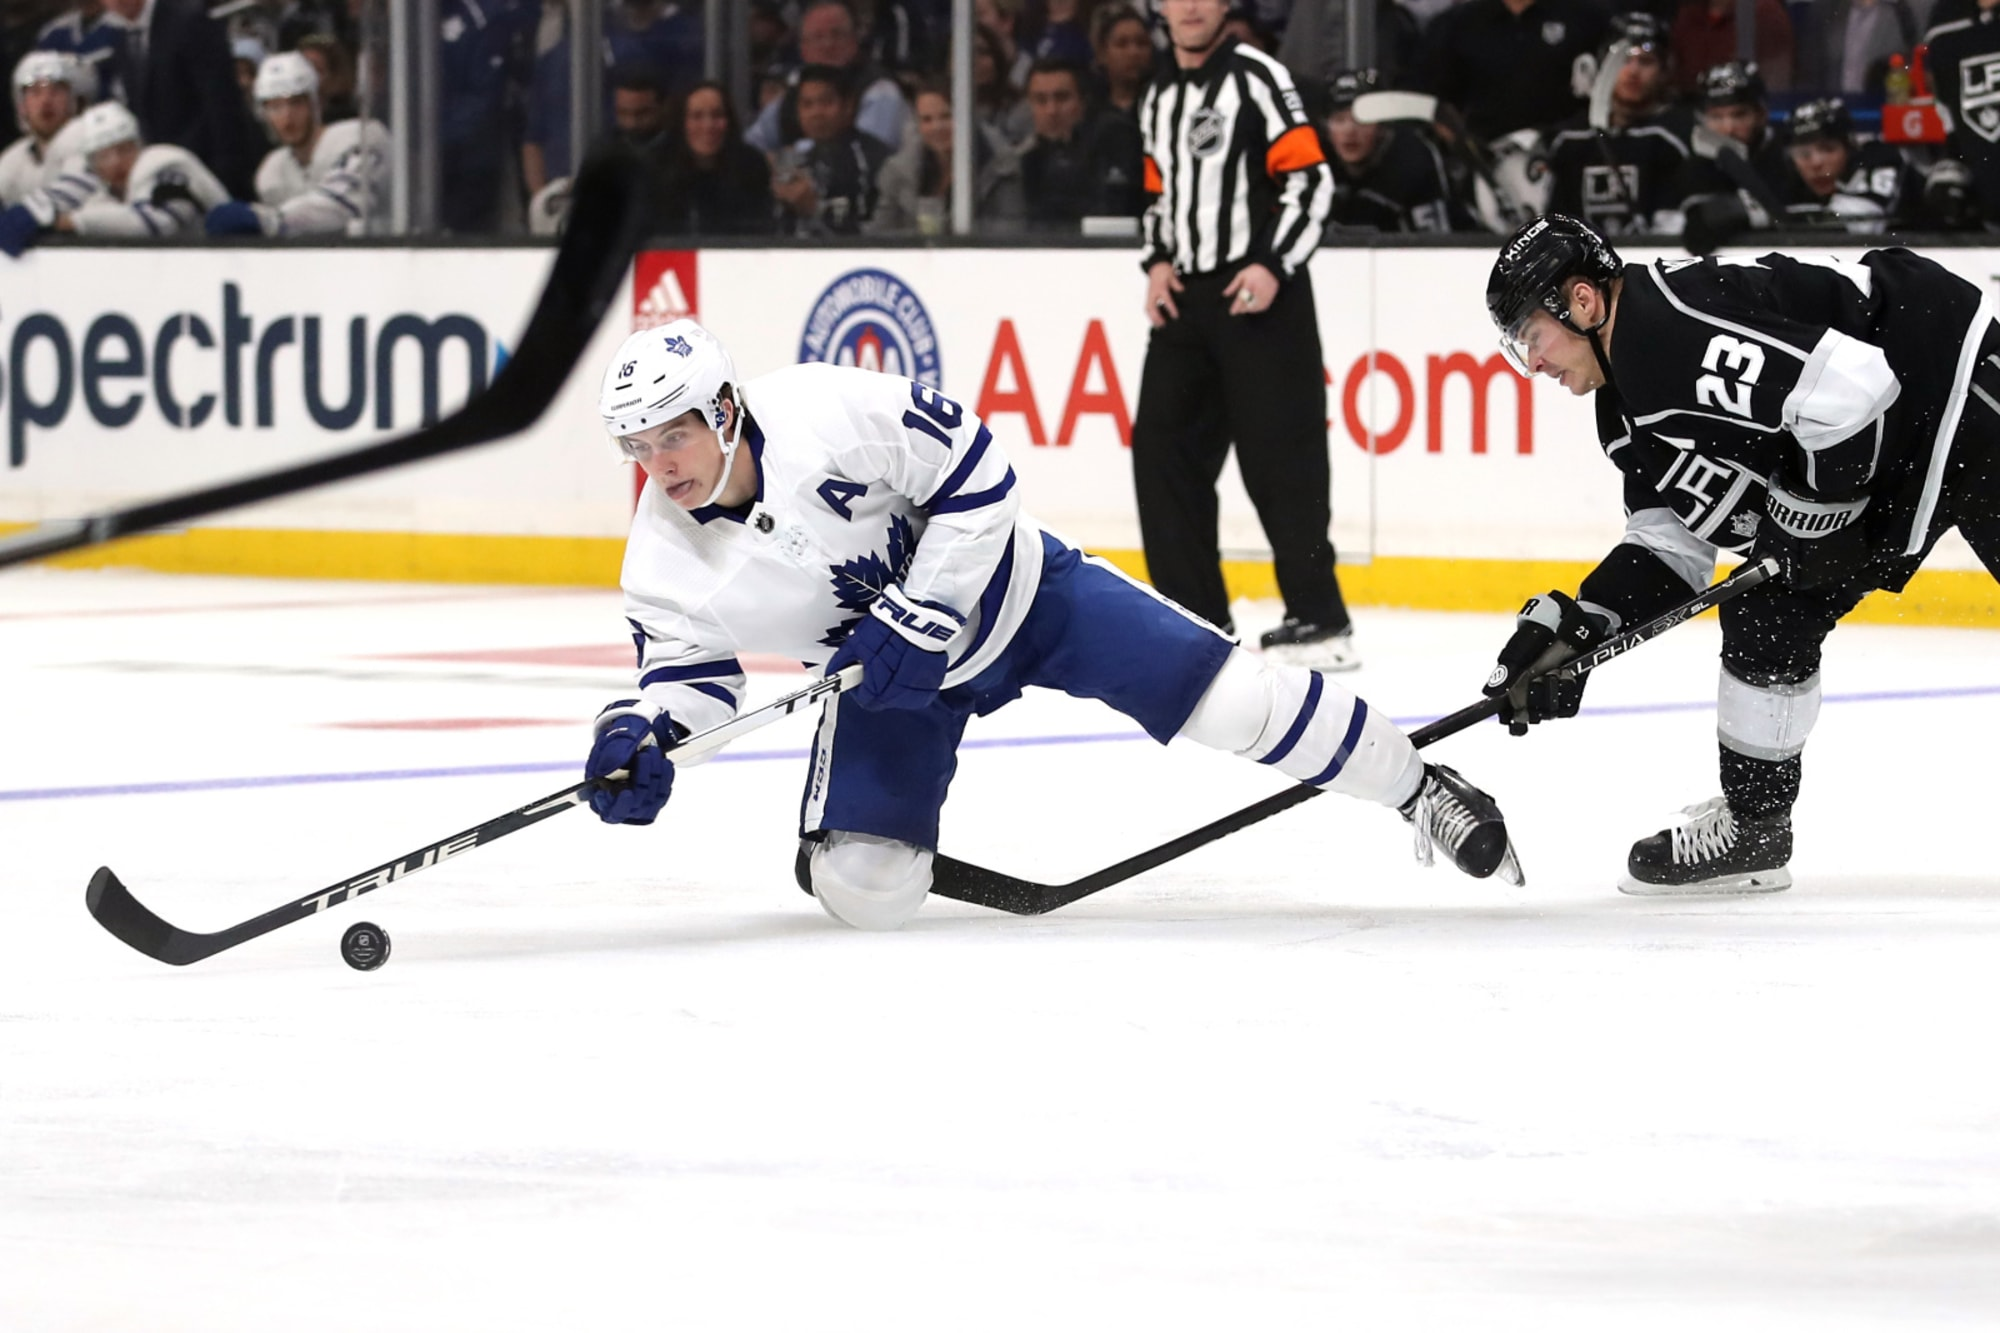 Toronto Maple Leafs: Marner Trade Talk Ignores Reality